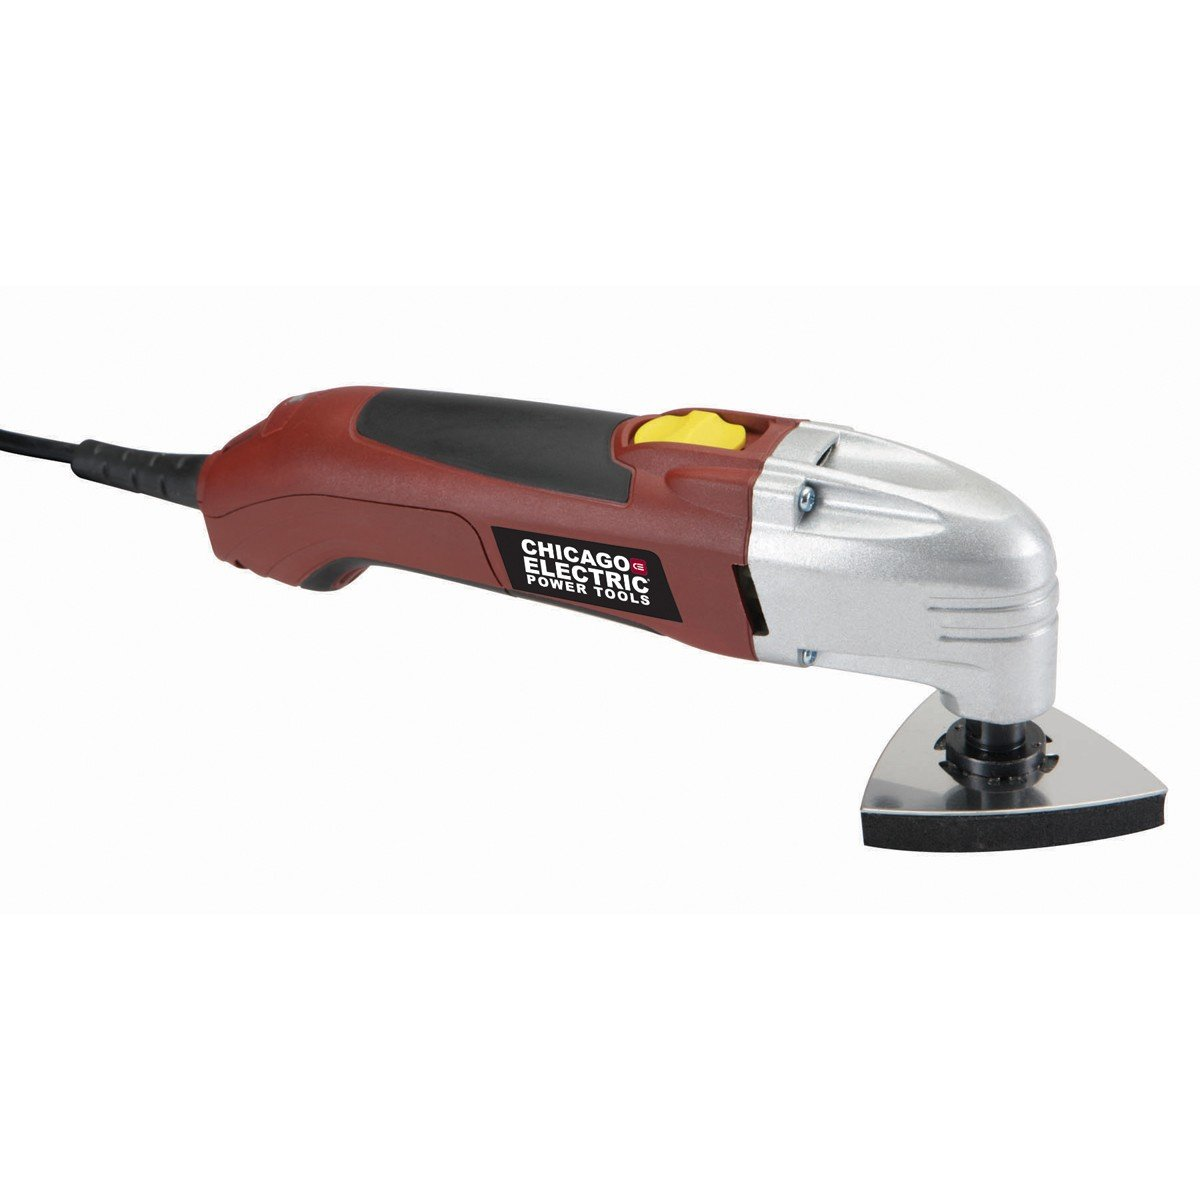 Chicago Electric Power Tools Oscillating Multifunction Power Tool